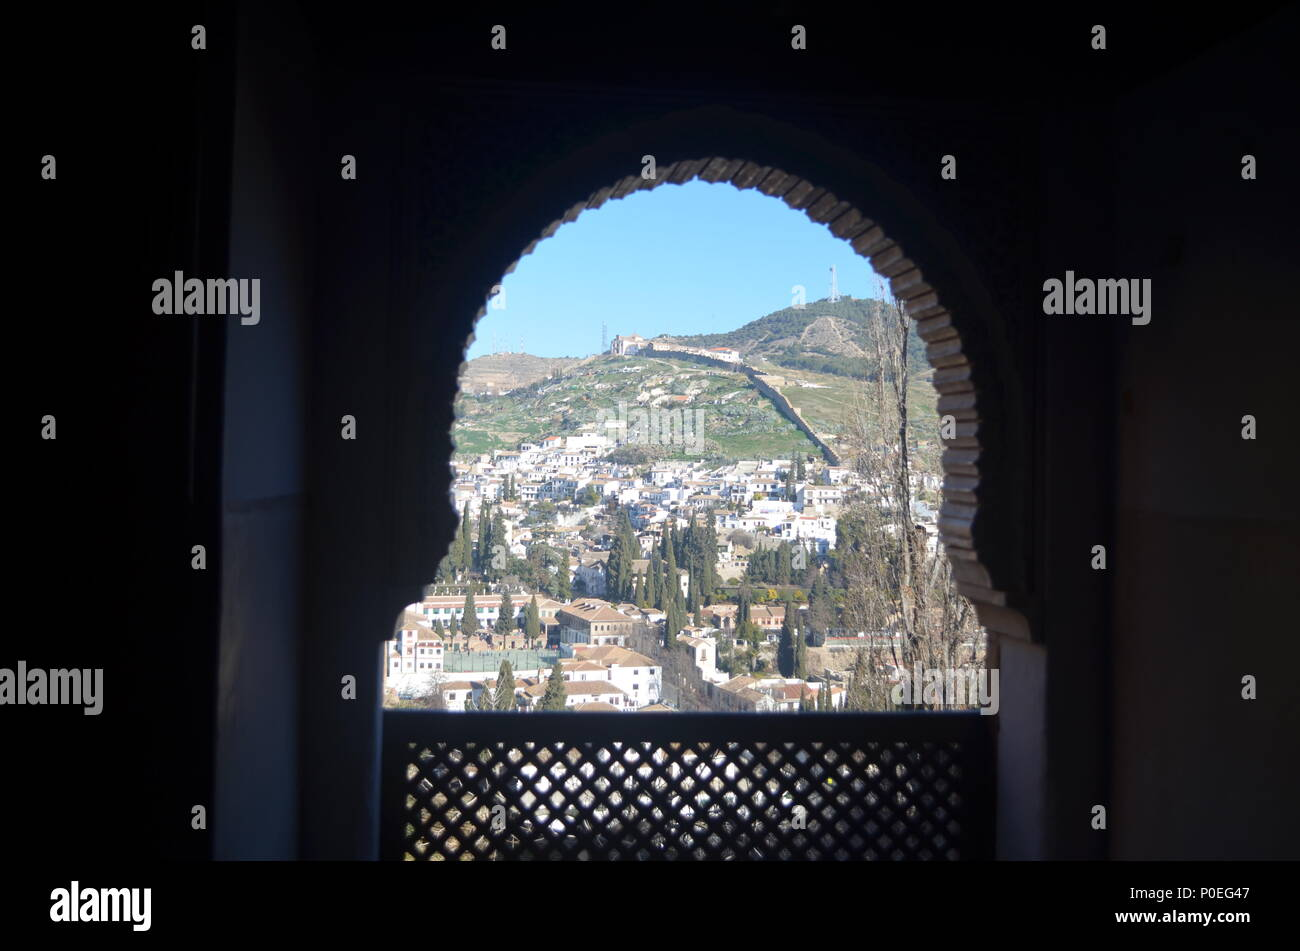 Balcony - Stock Image